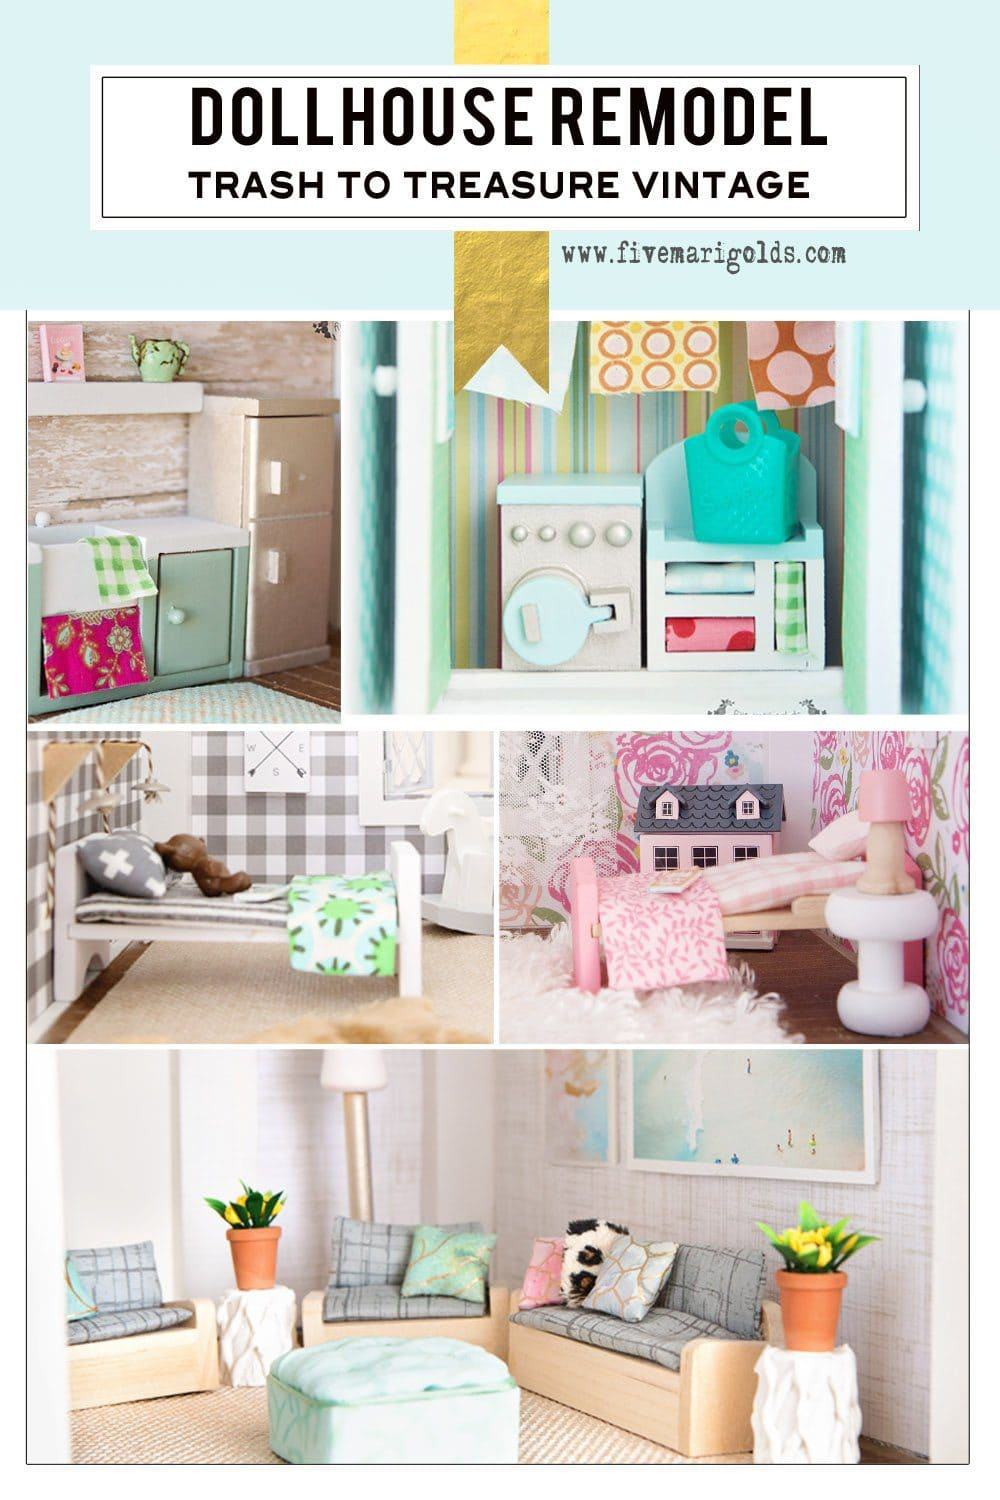 This blog shows a room-by-room vintage dollhouse remodel on a budget! | Five Marigolds